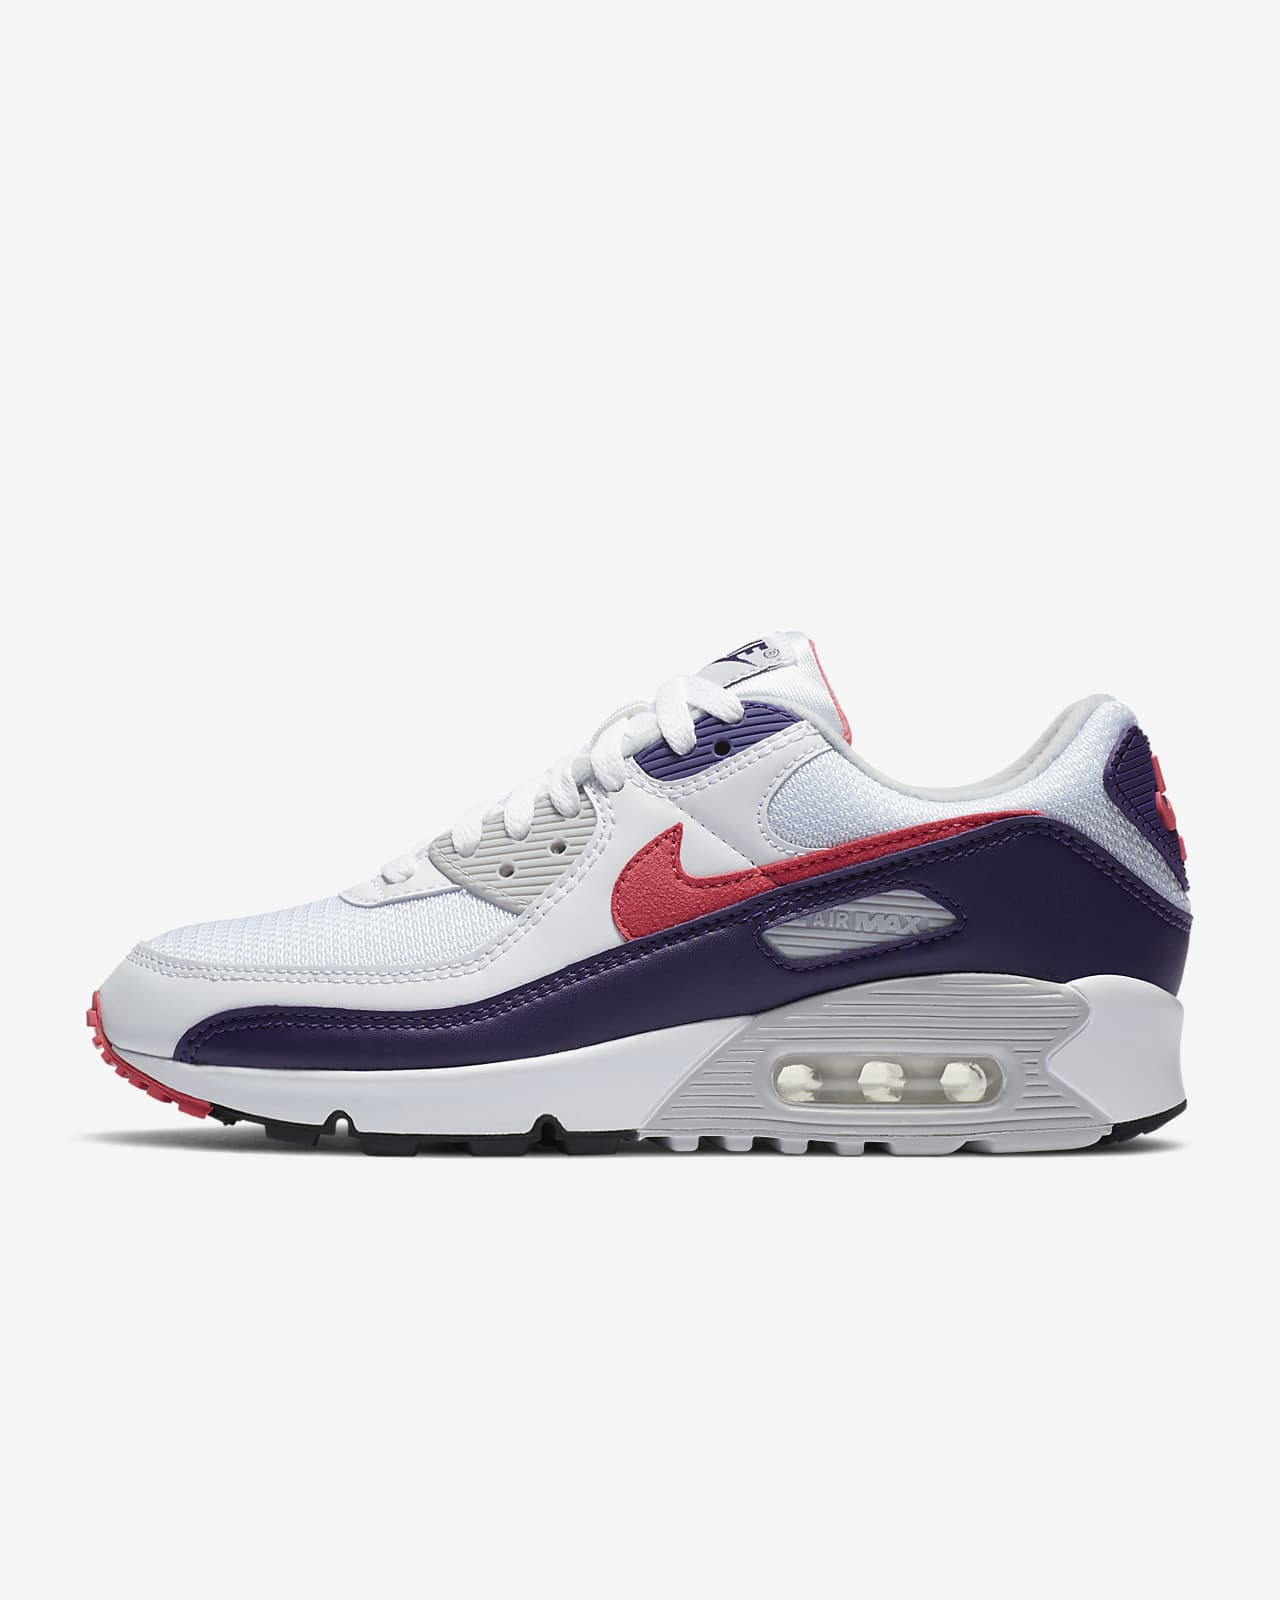 Nike Air Max III Women's Shoe